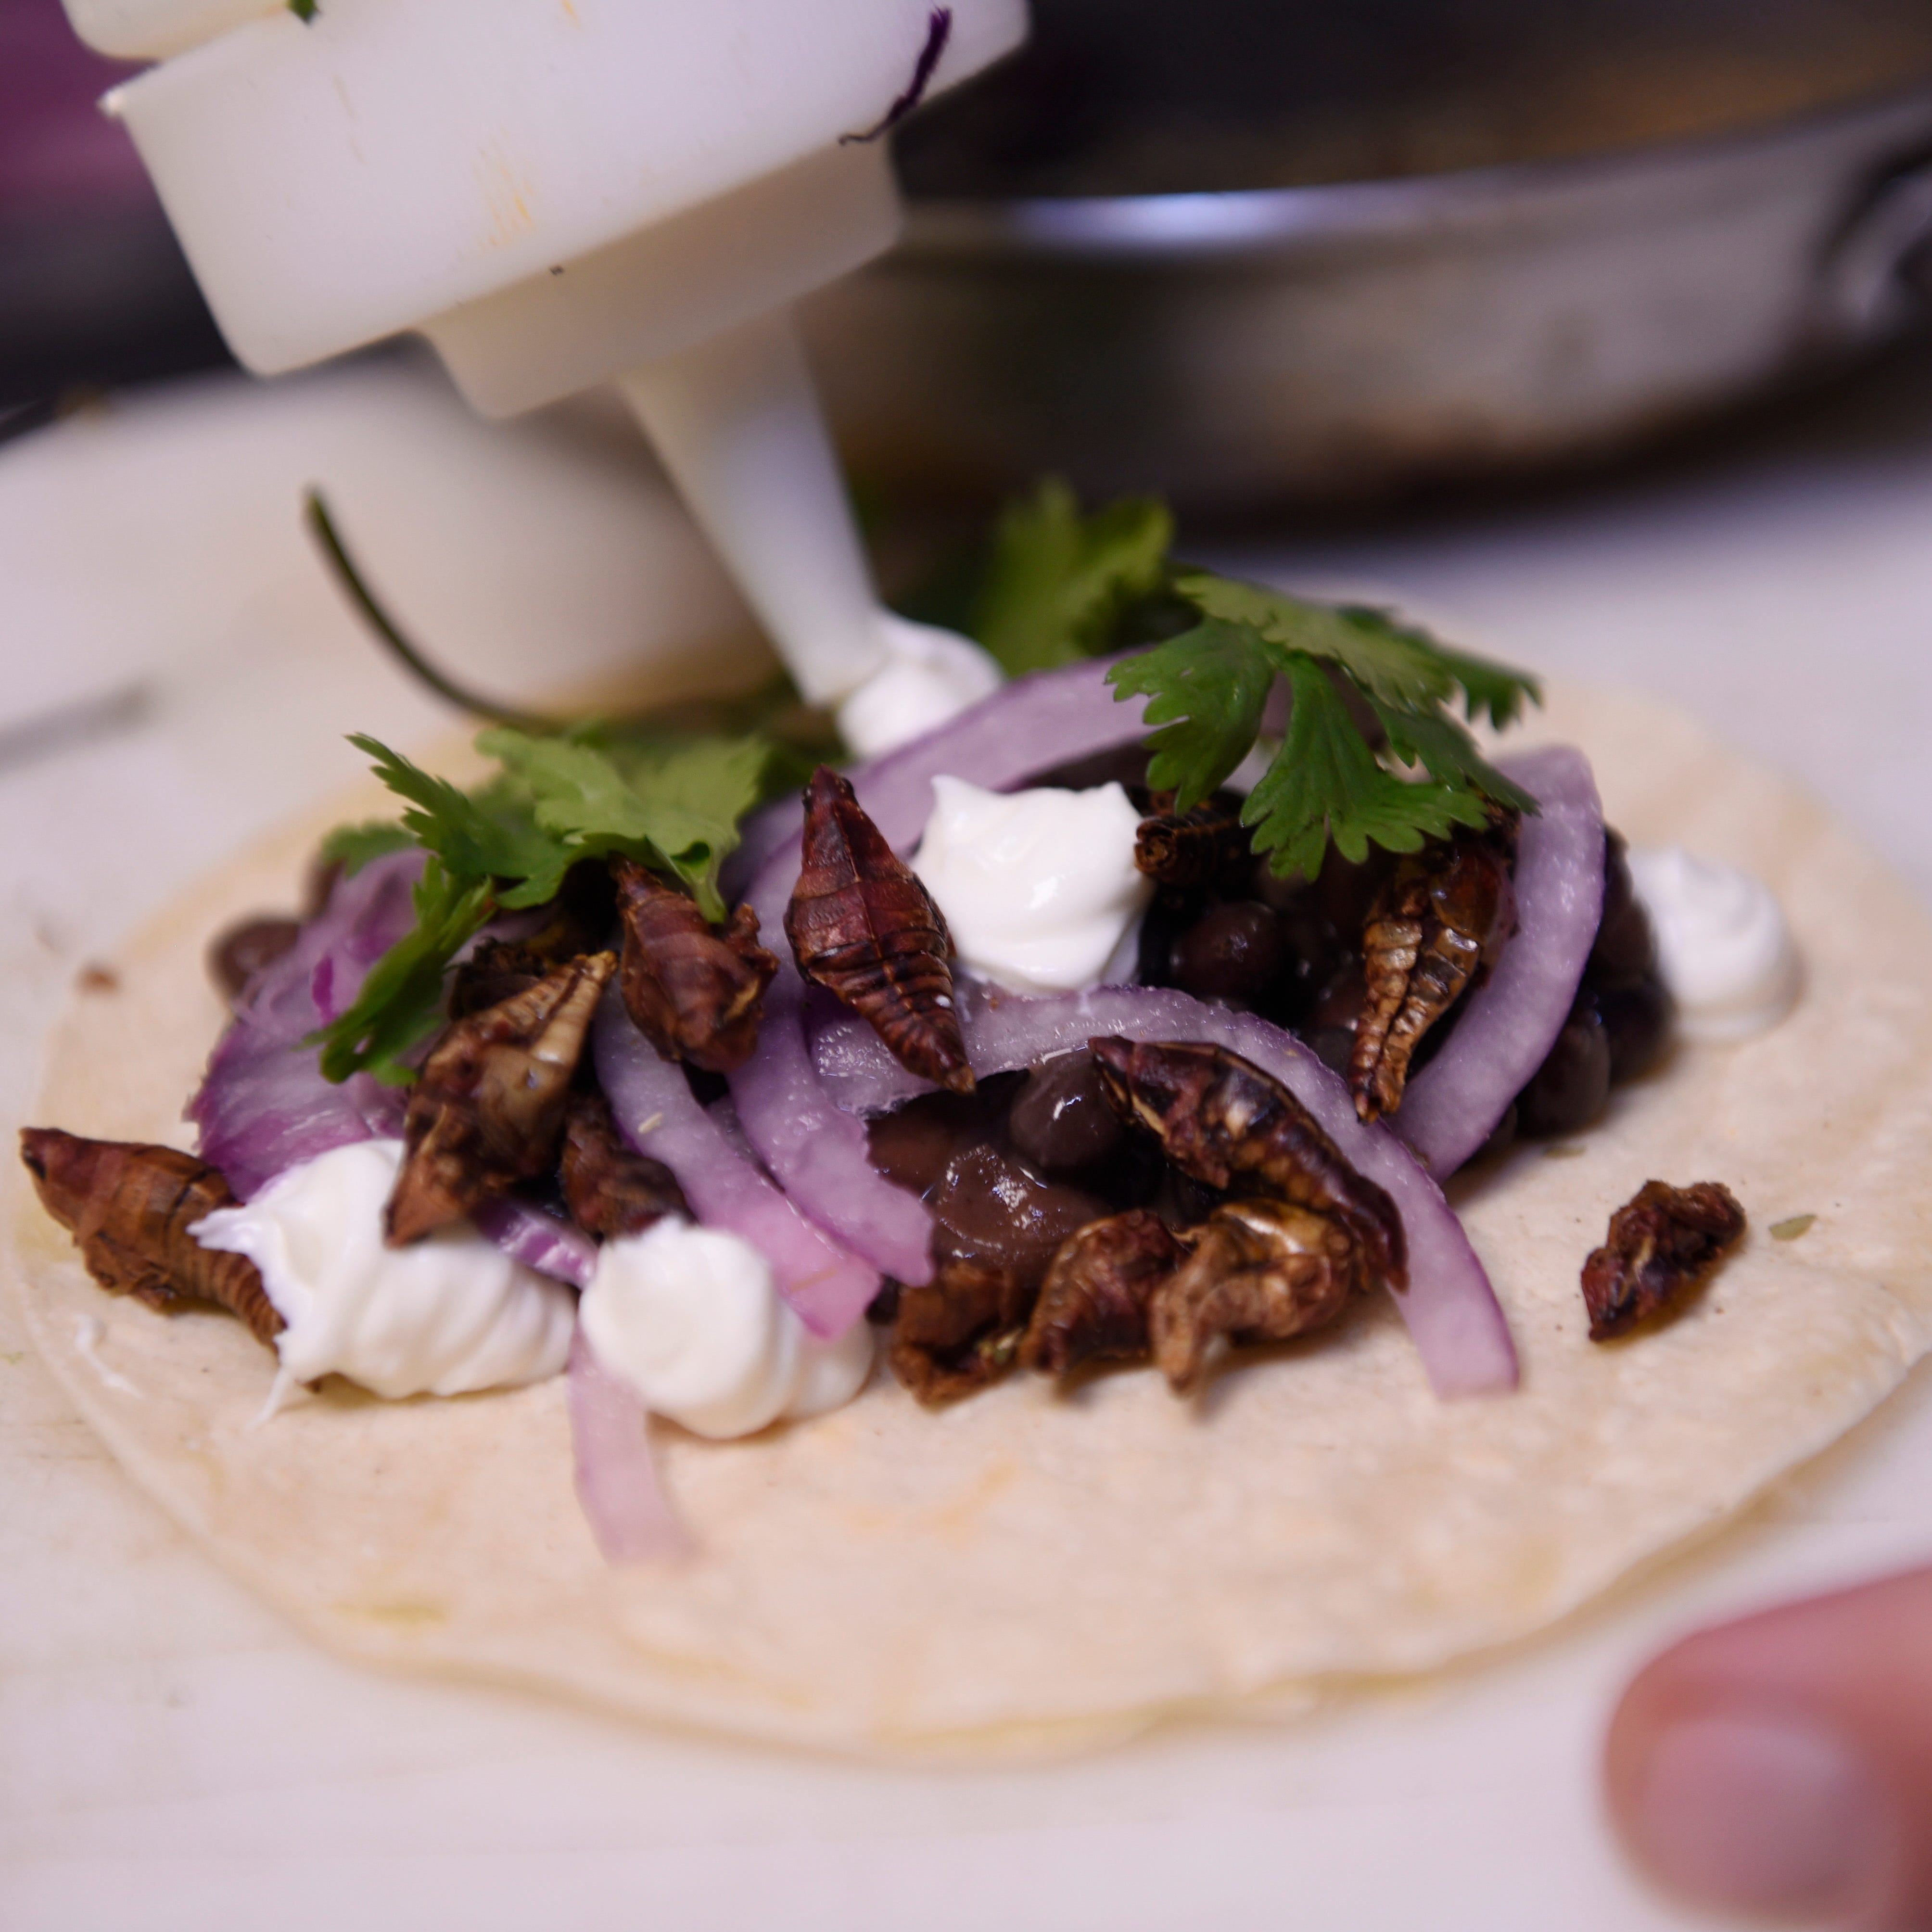 Chef Drakopoulous squeeze out house made sour cream on a roasted grasshoppers taco with wild mushrooms, black beans and cilantro.